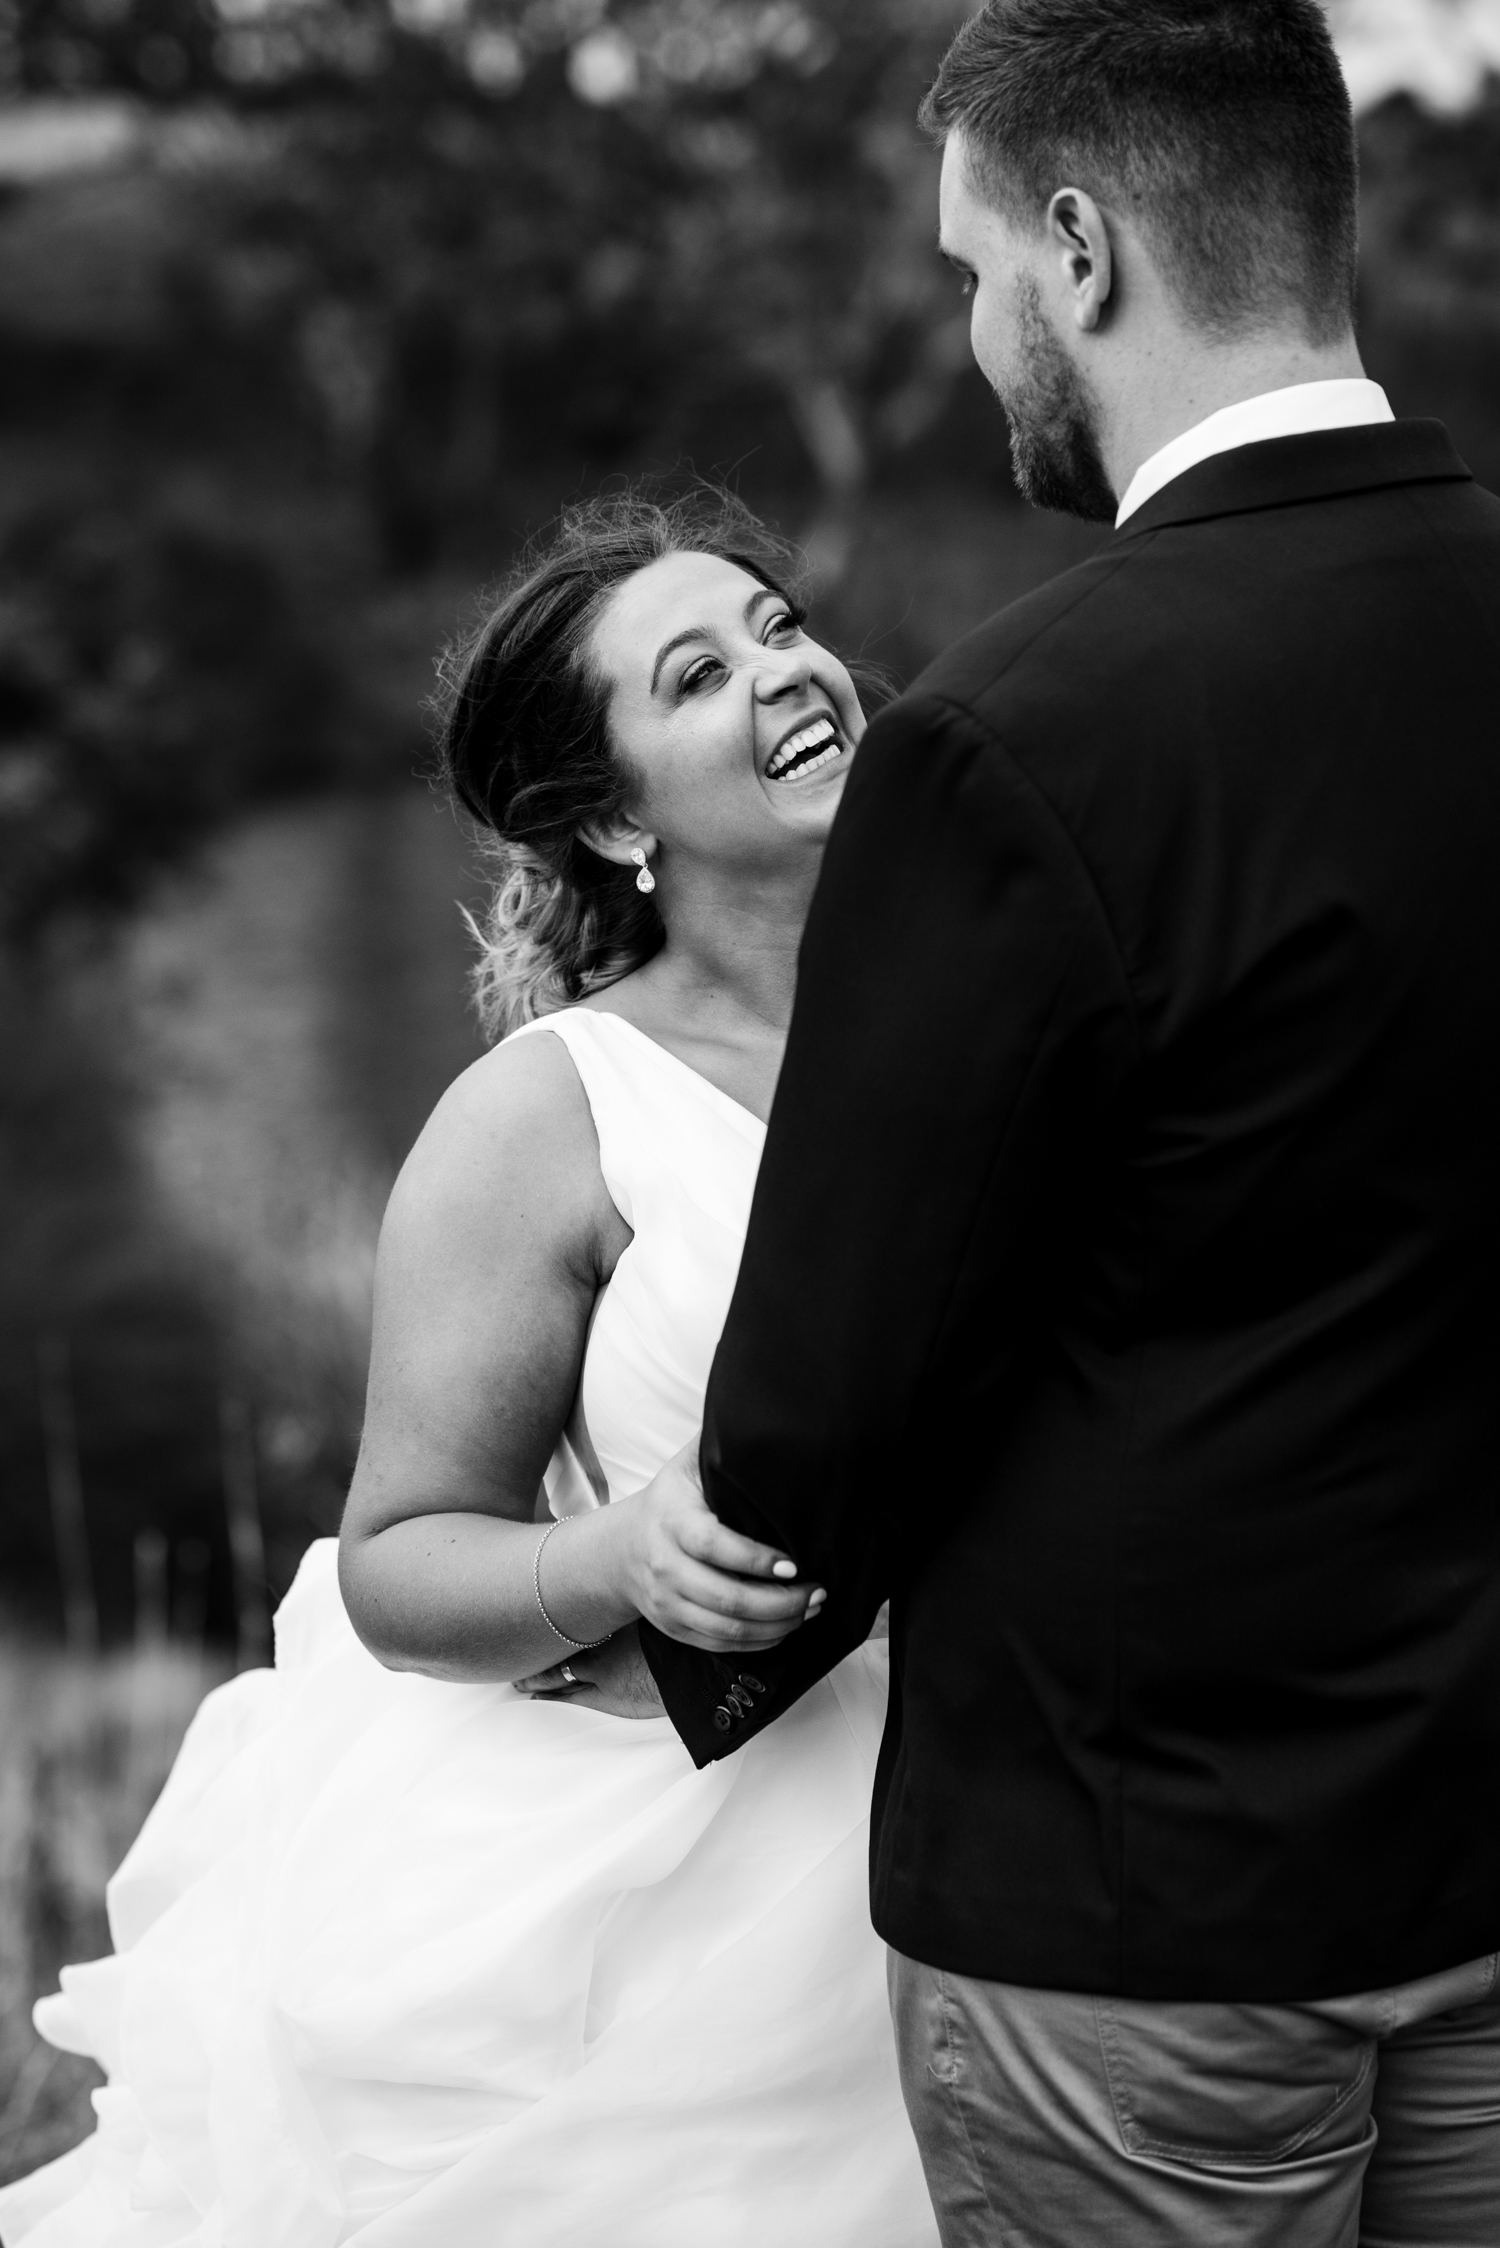 Brisbane Wedding Photographer | Engagement-Elopement Photography-83.jpg